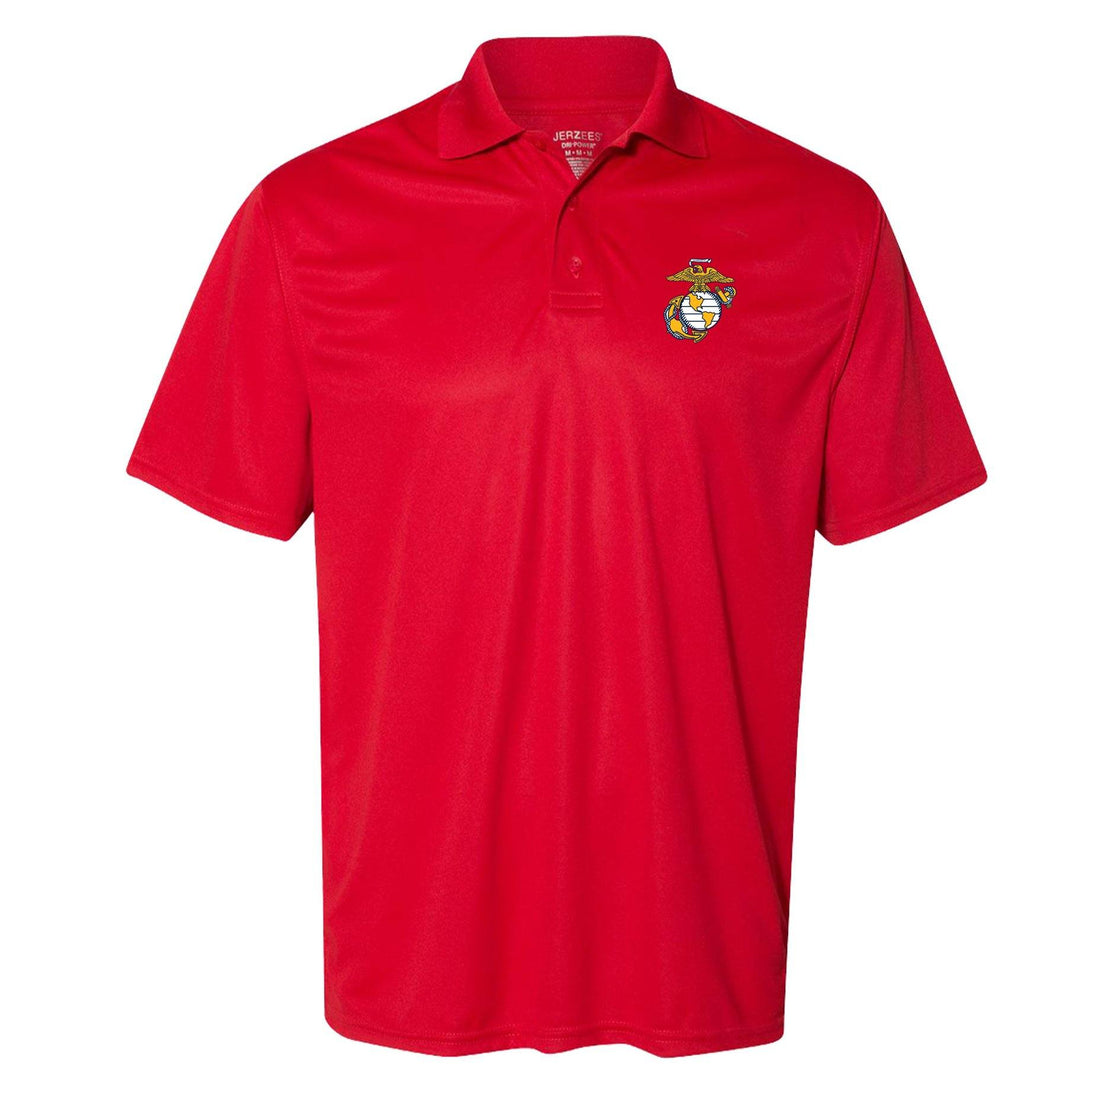 COMBAT CHARGED DRI-FIT PERFORMANCE POLY EGA POLO